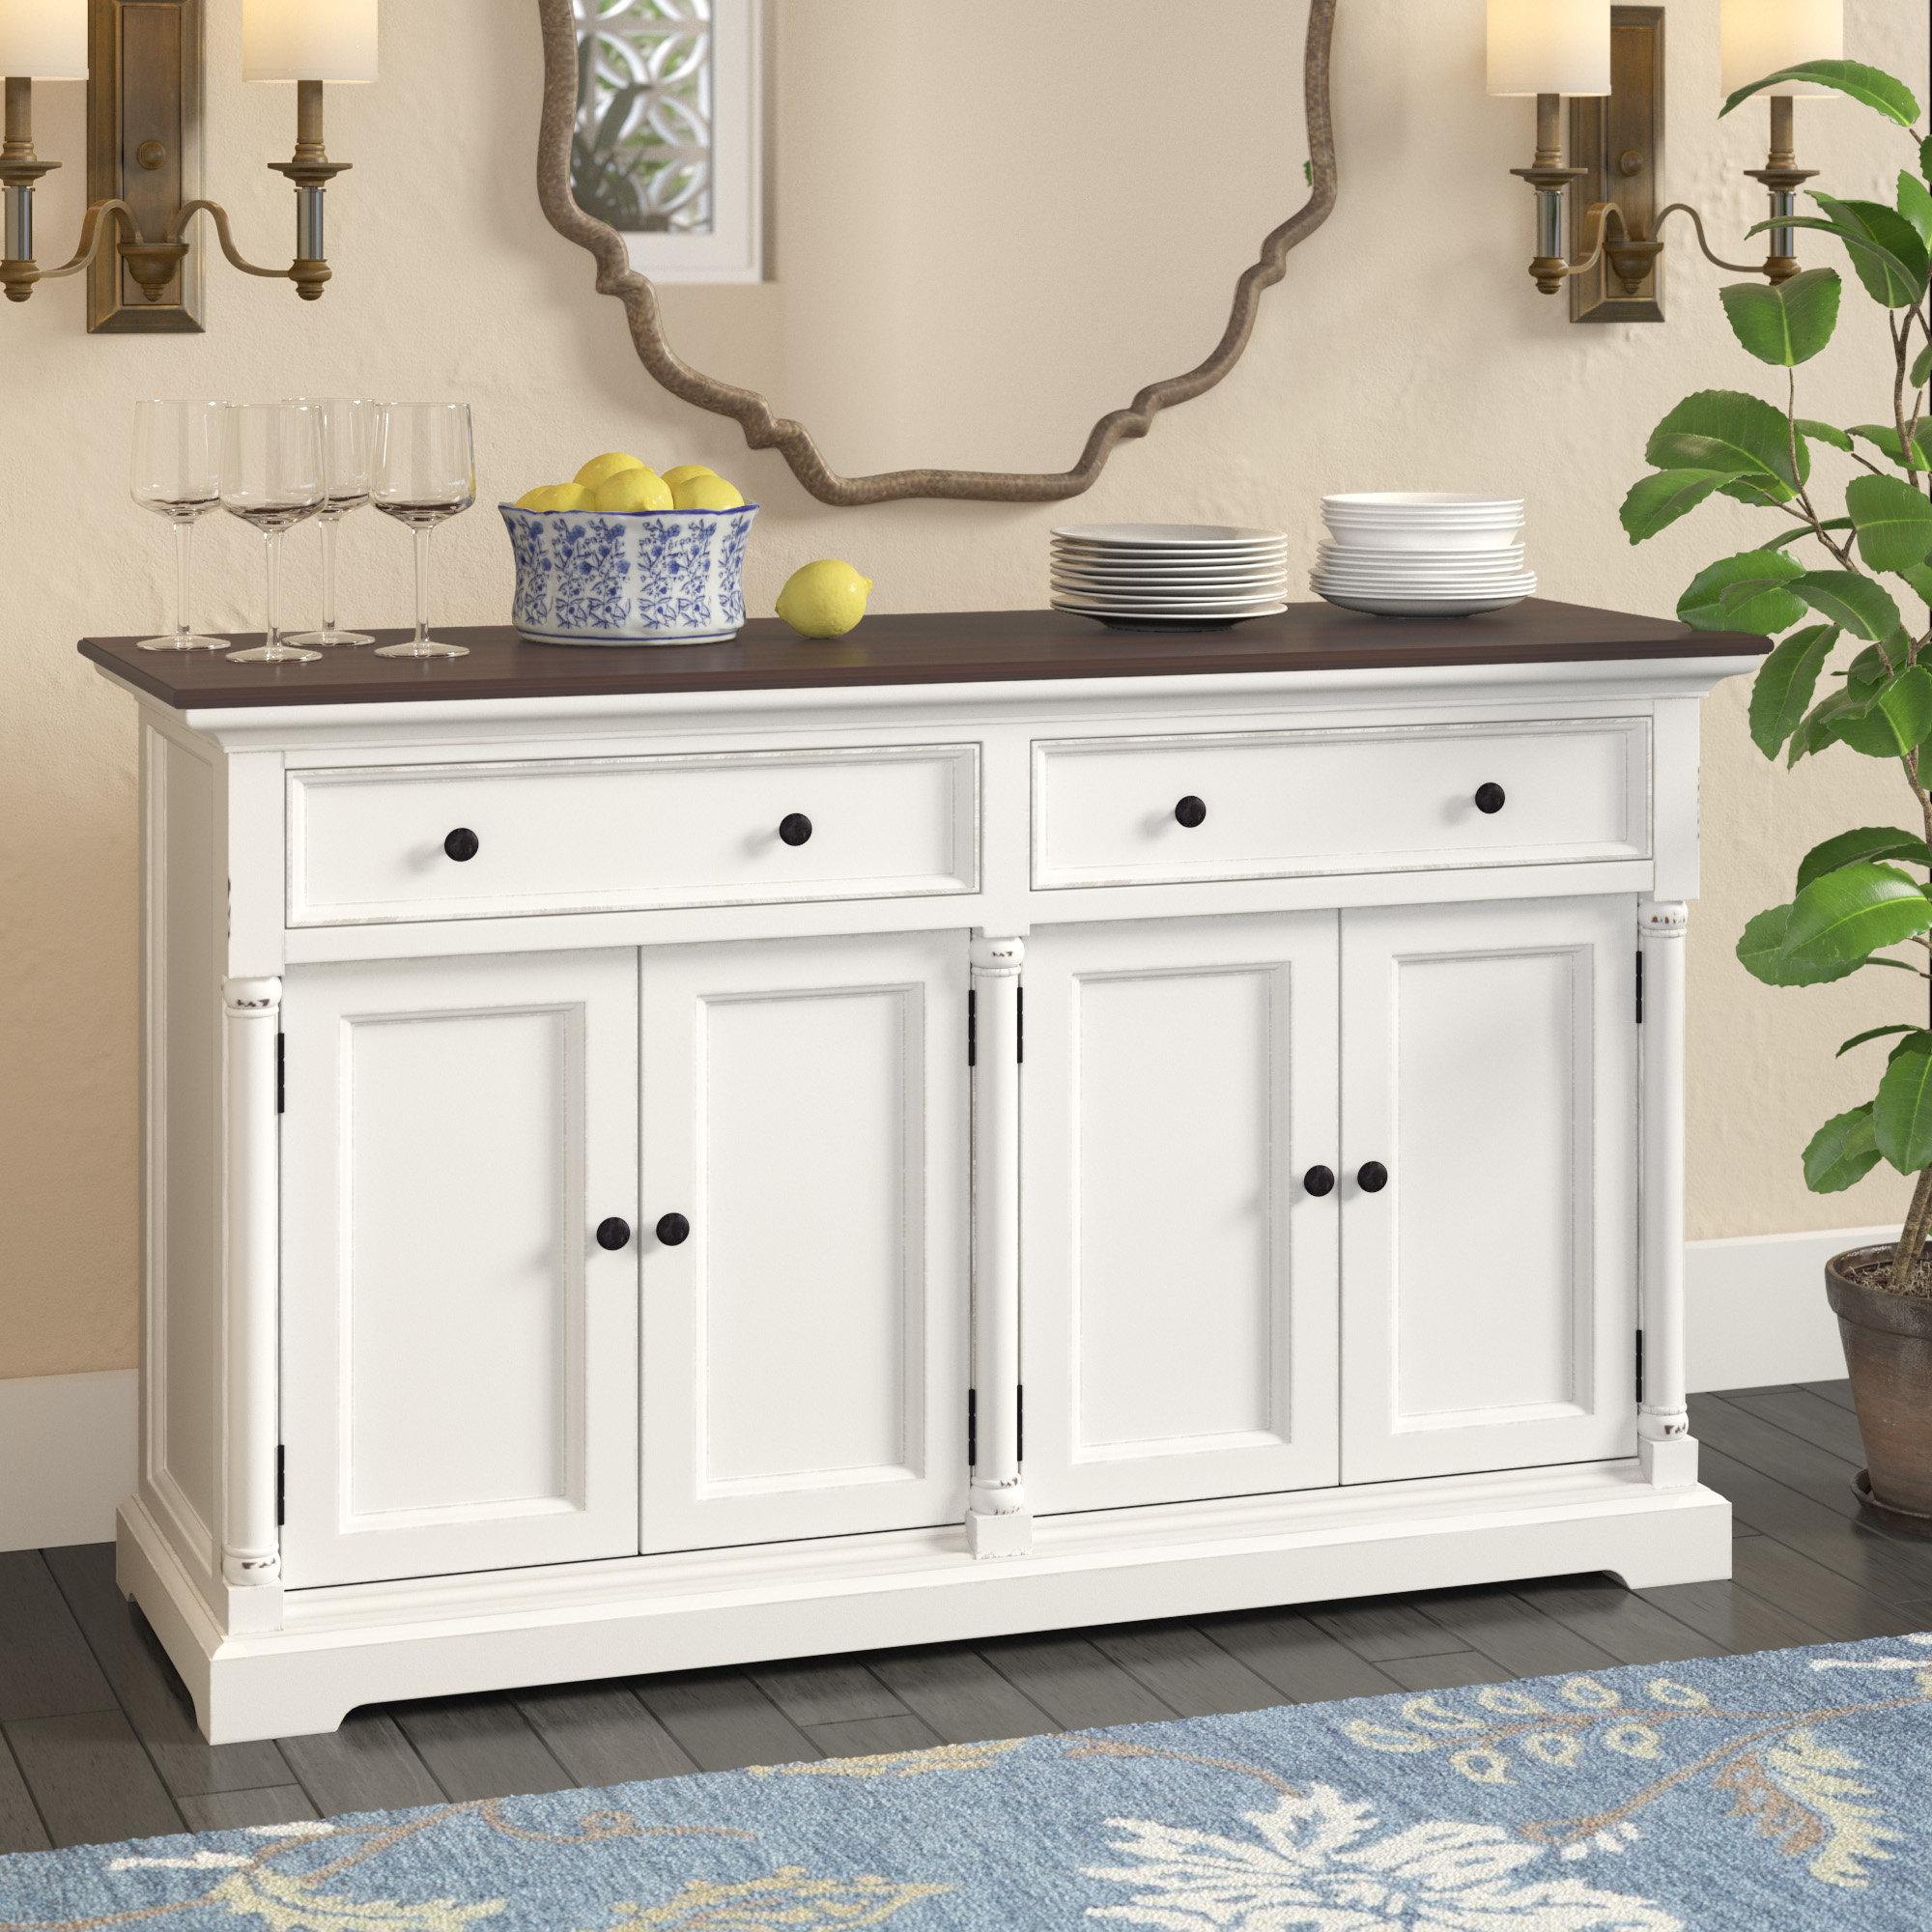 Farmhouse & Rustic Darby Home Co Sideboards & Buffets Throughout Widely Used Phyllis Sideboards (View 5 of 20)